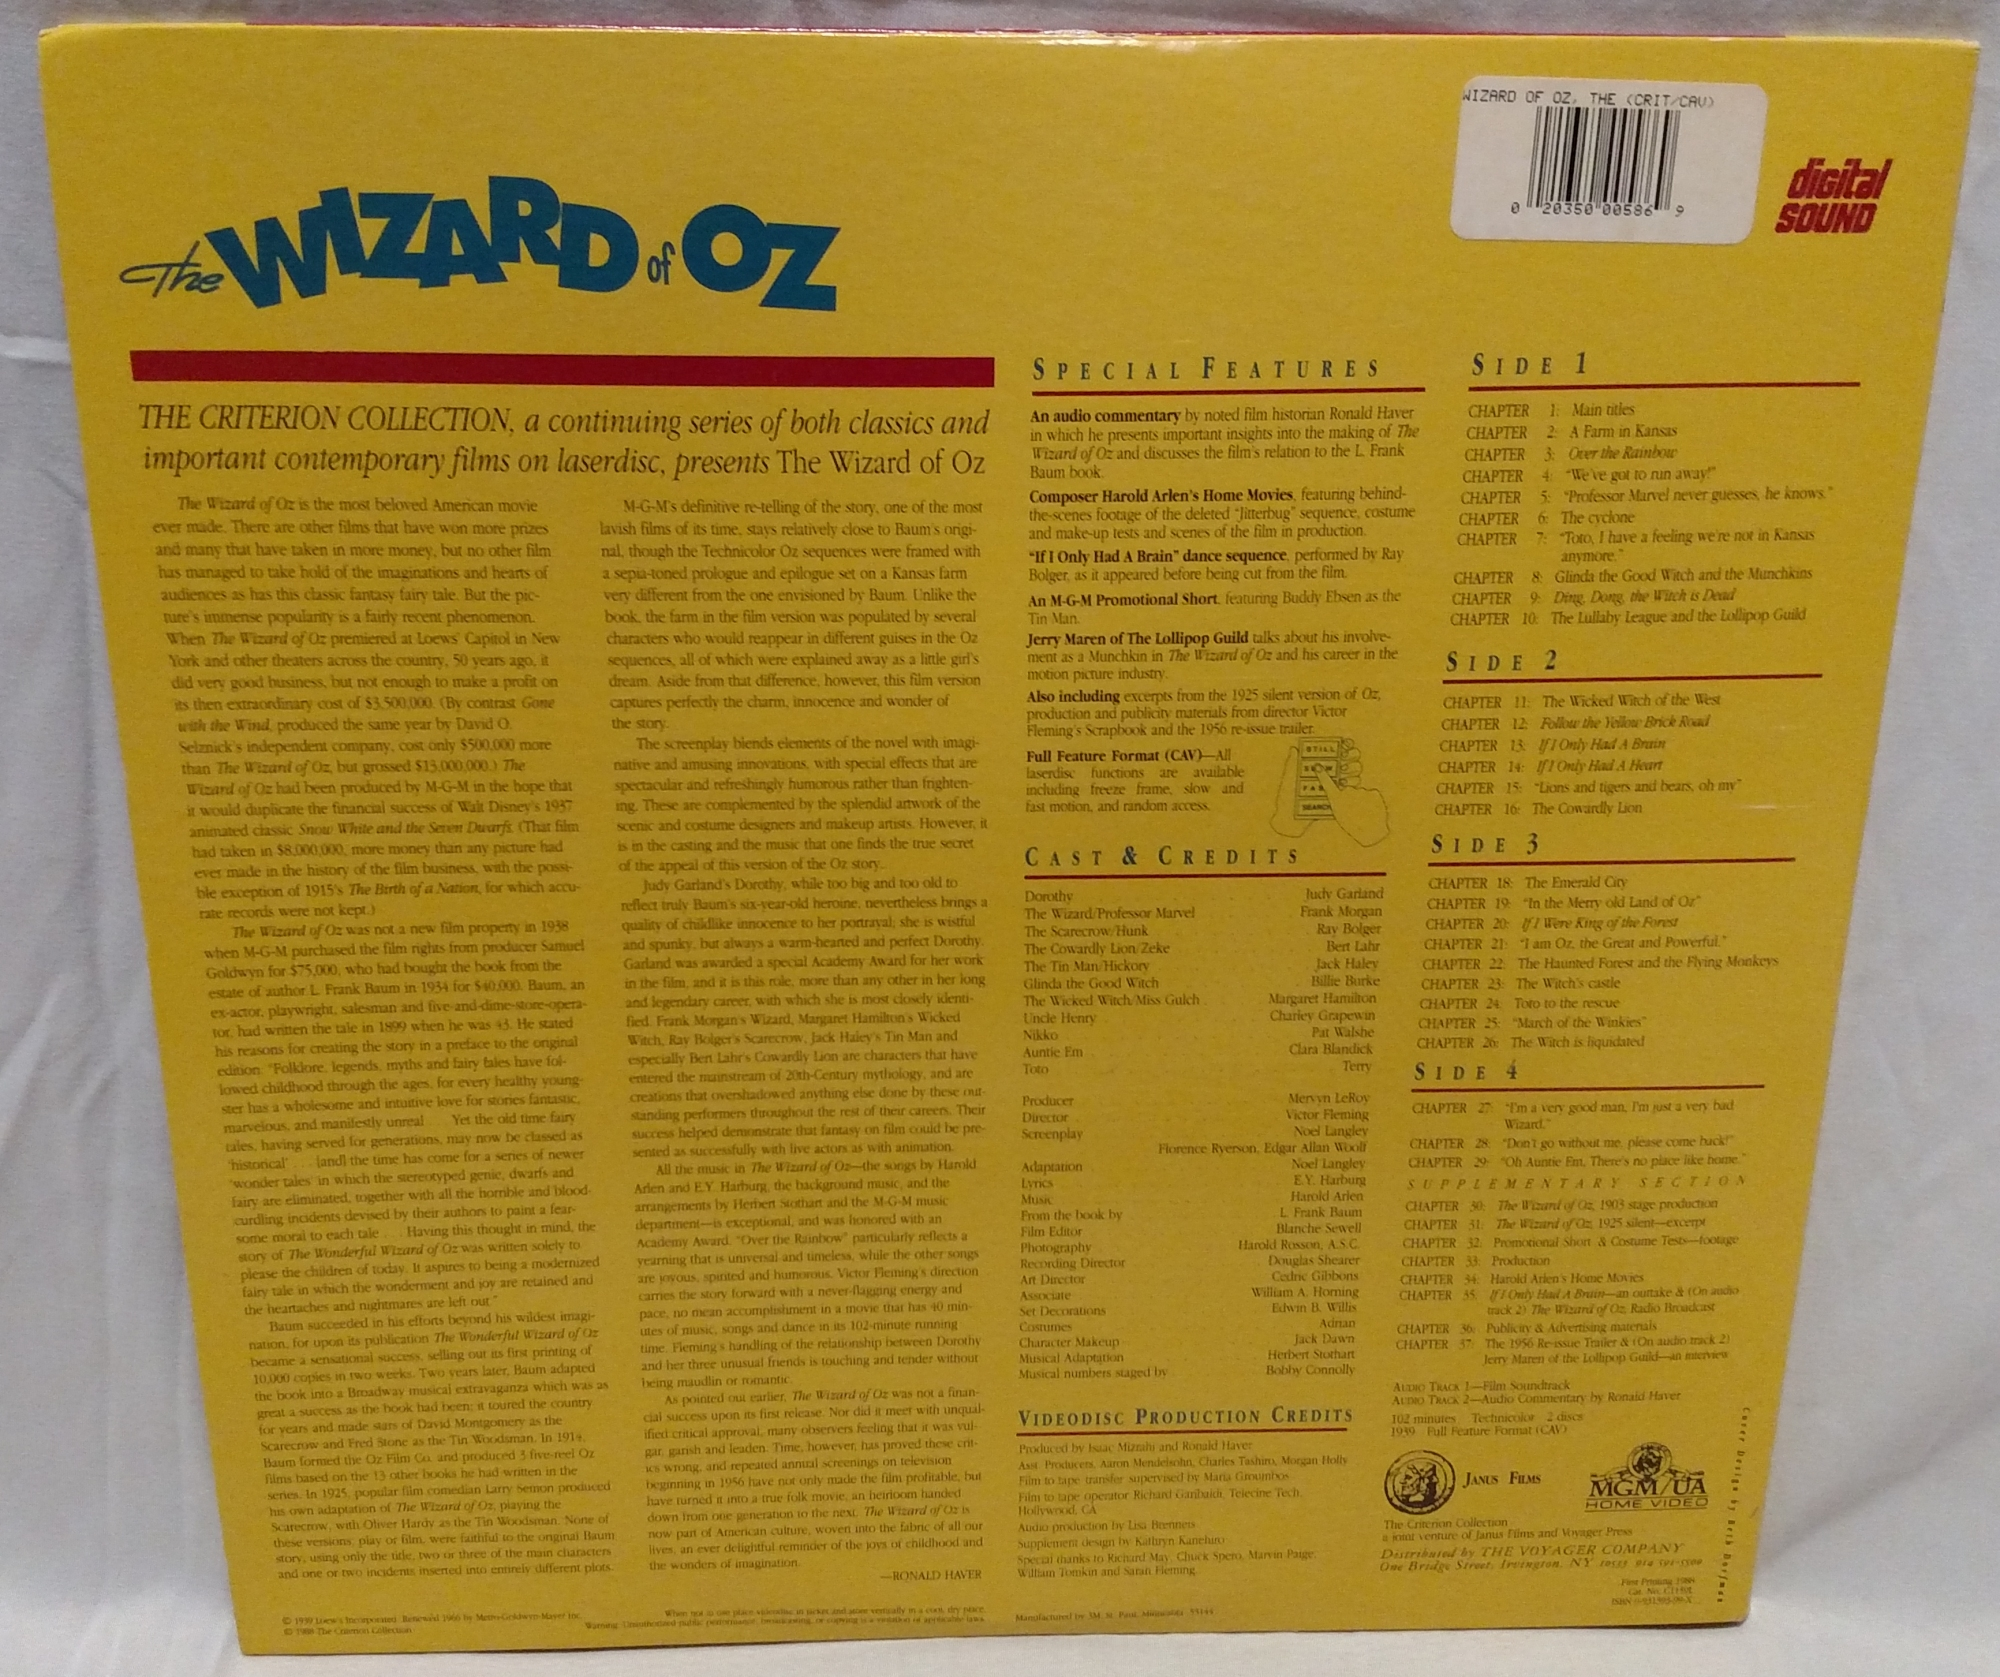 The Wizard of Oz - 1988 Criterion Laserdisc Back Cover